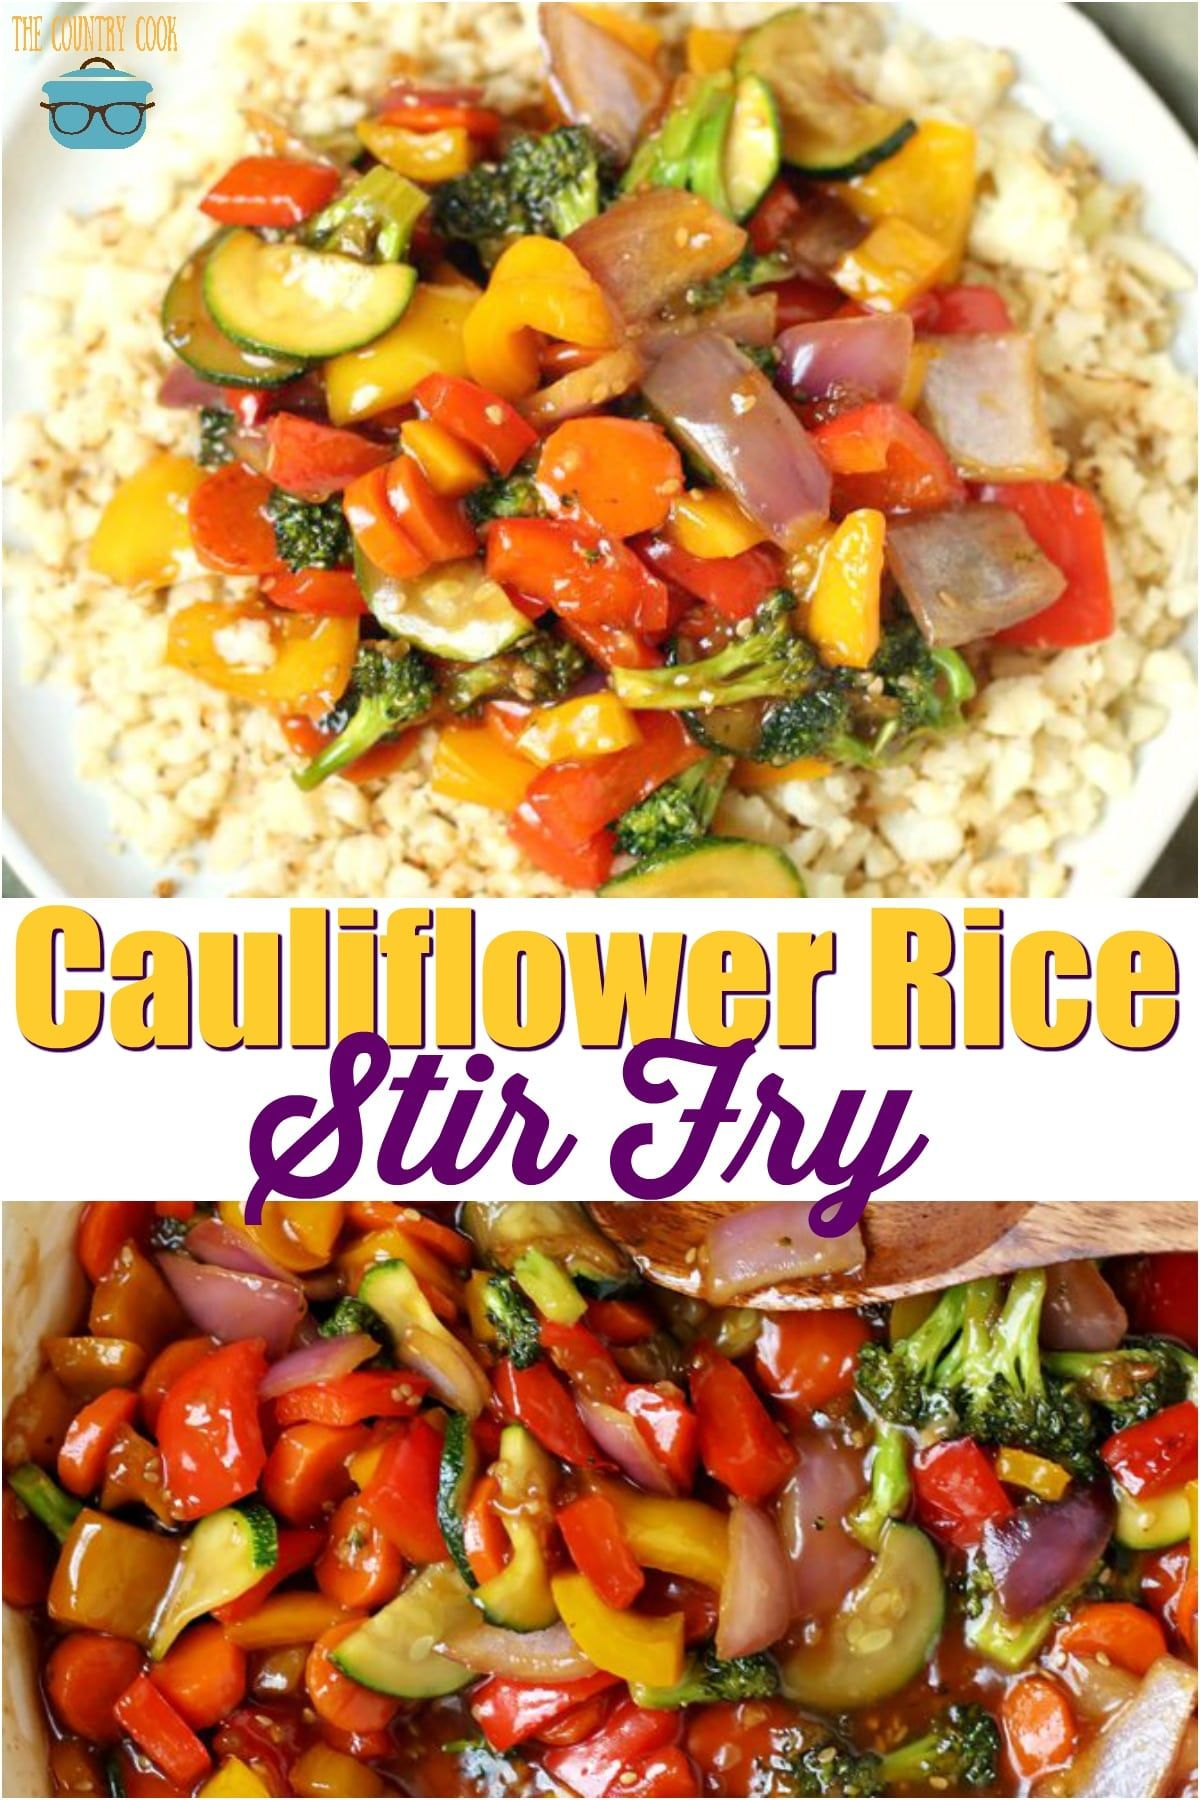 Low Carb Cauliflower Rice Stir Fry The Country Cook Recipe Vegetable Stir Fry Recipe Cauliflower Rice Stir Fry Stir Fry